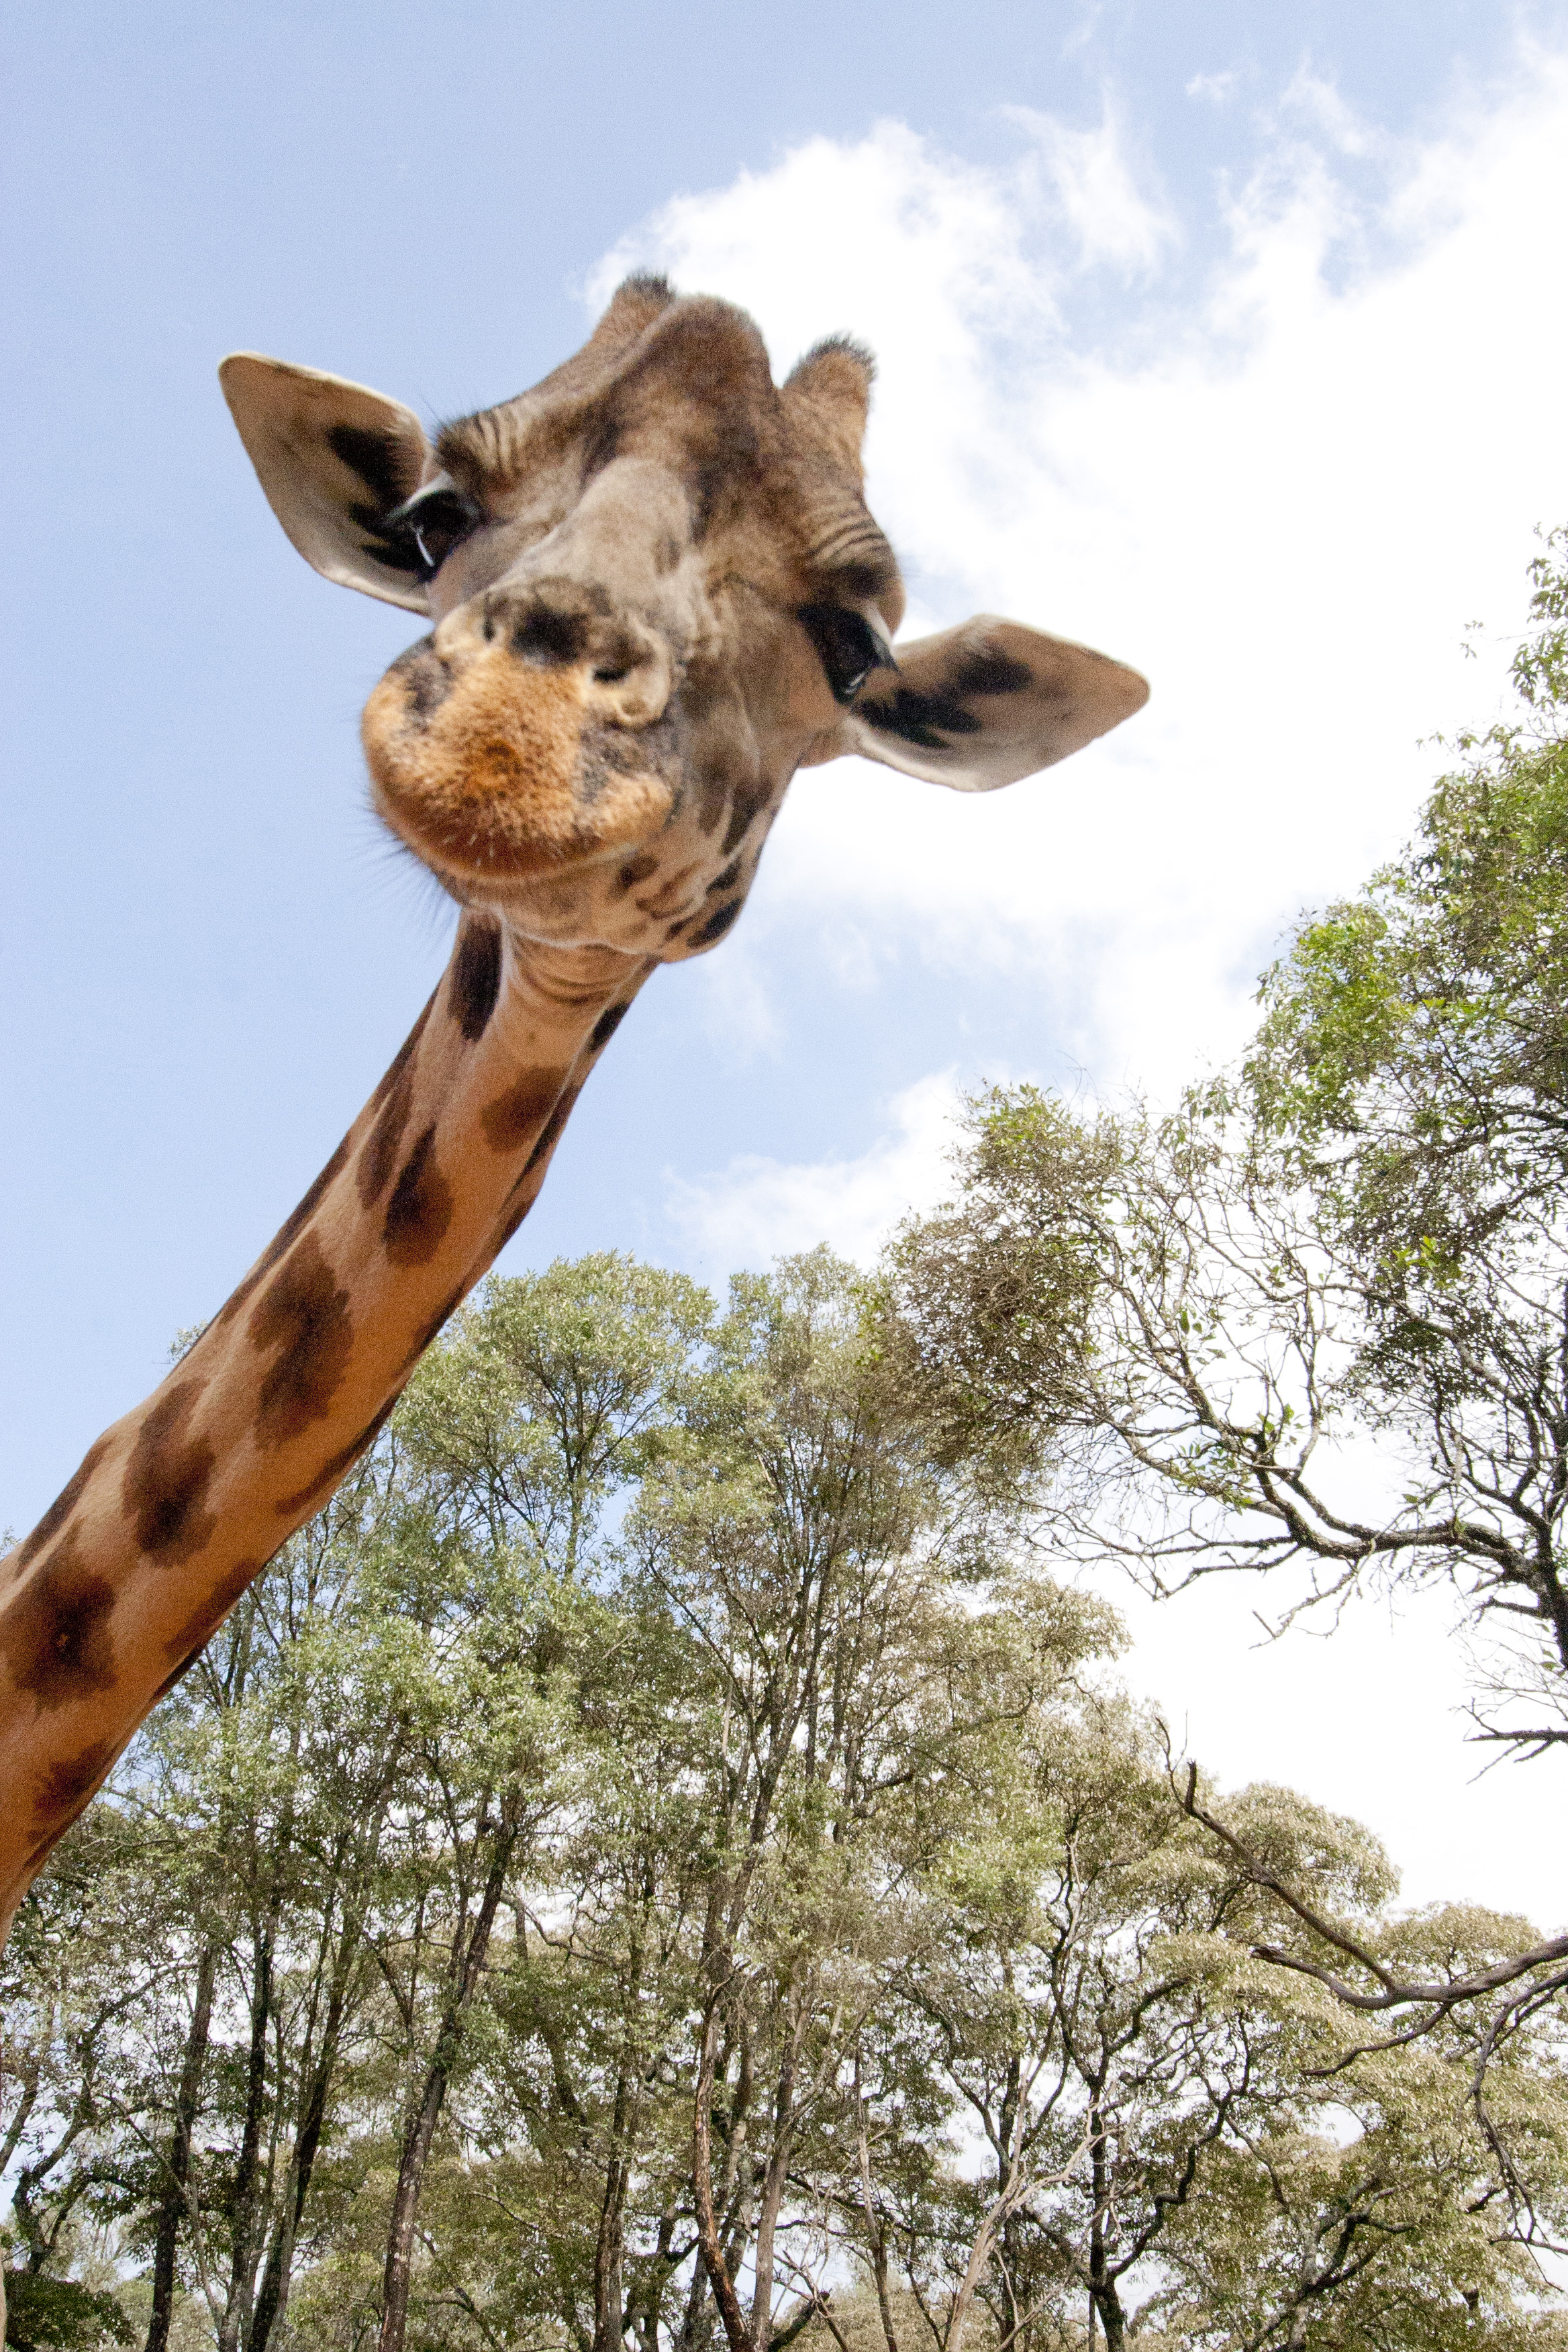 Giraffe - 04 photo